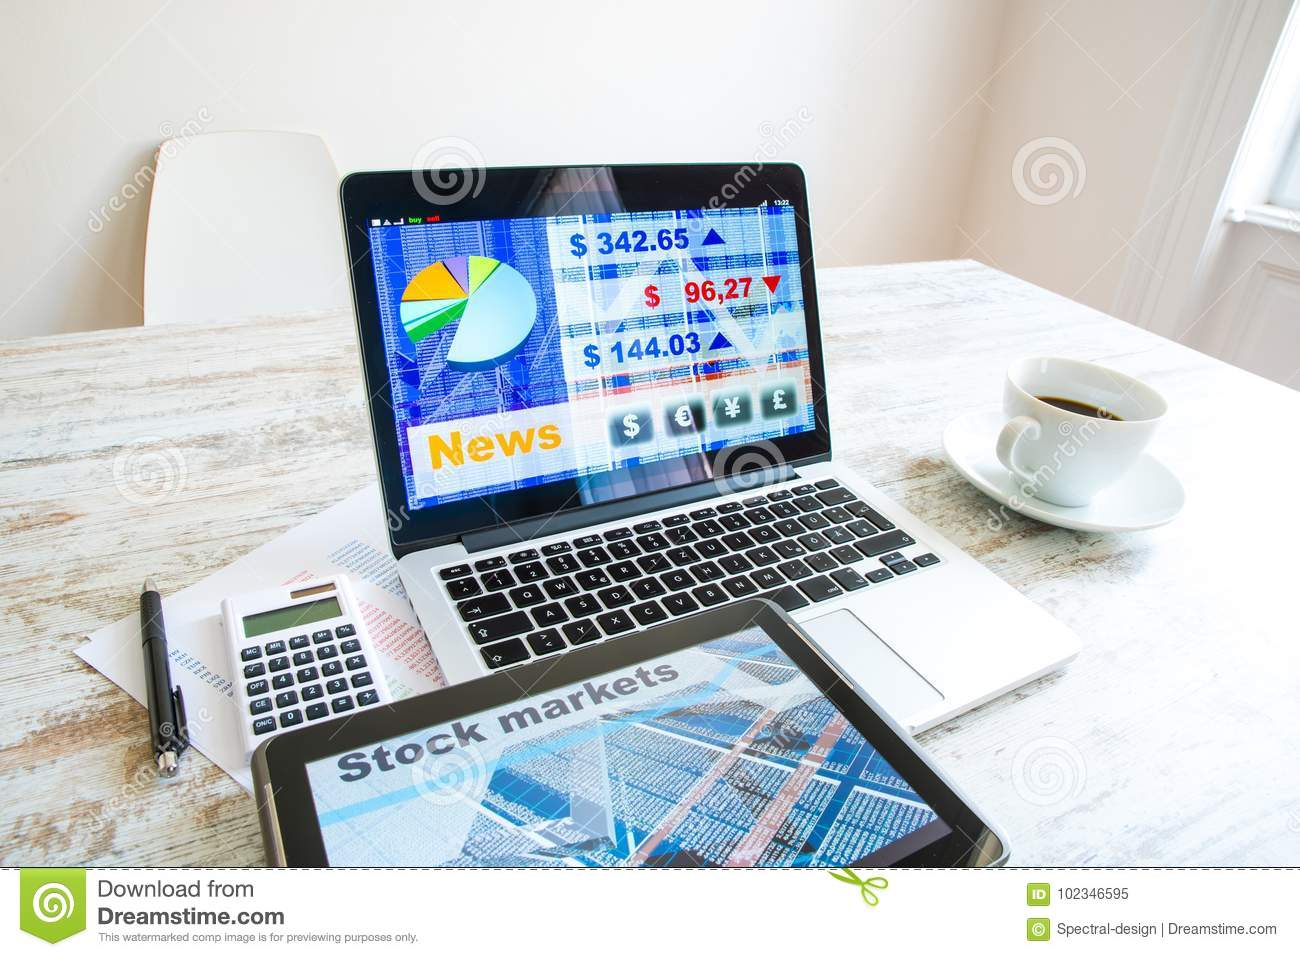 Stock market calculations and trading with a tablet pc and lapto download comp ccuart Image collections